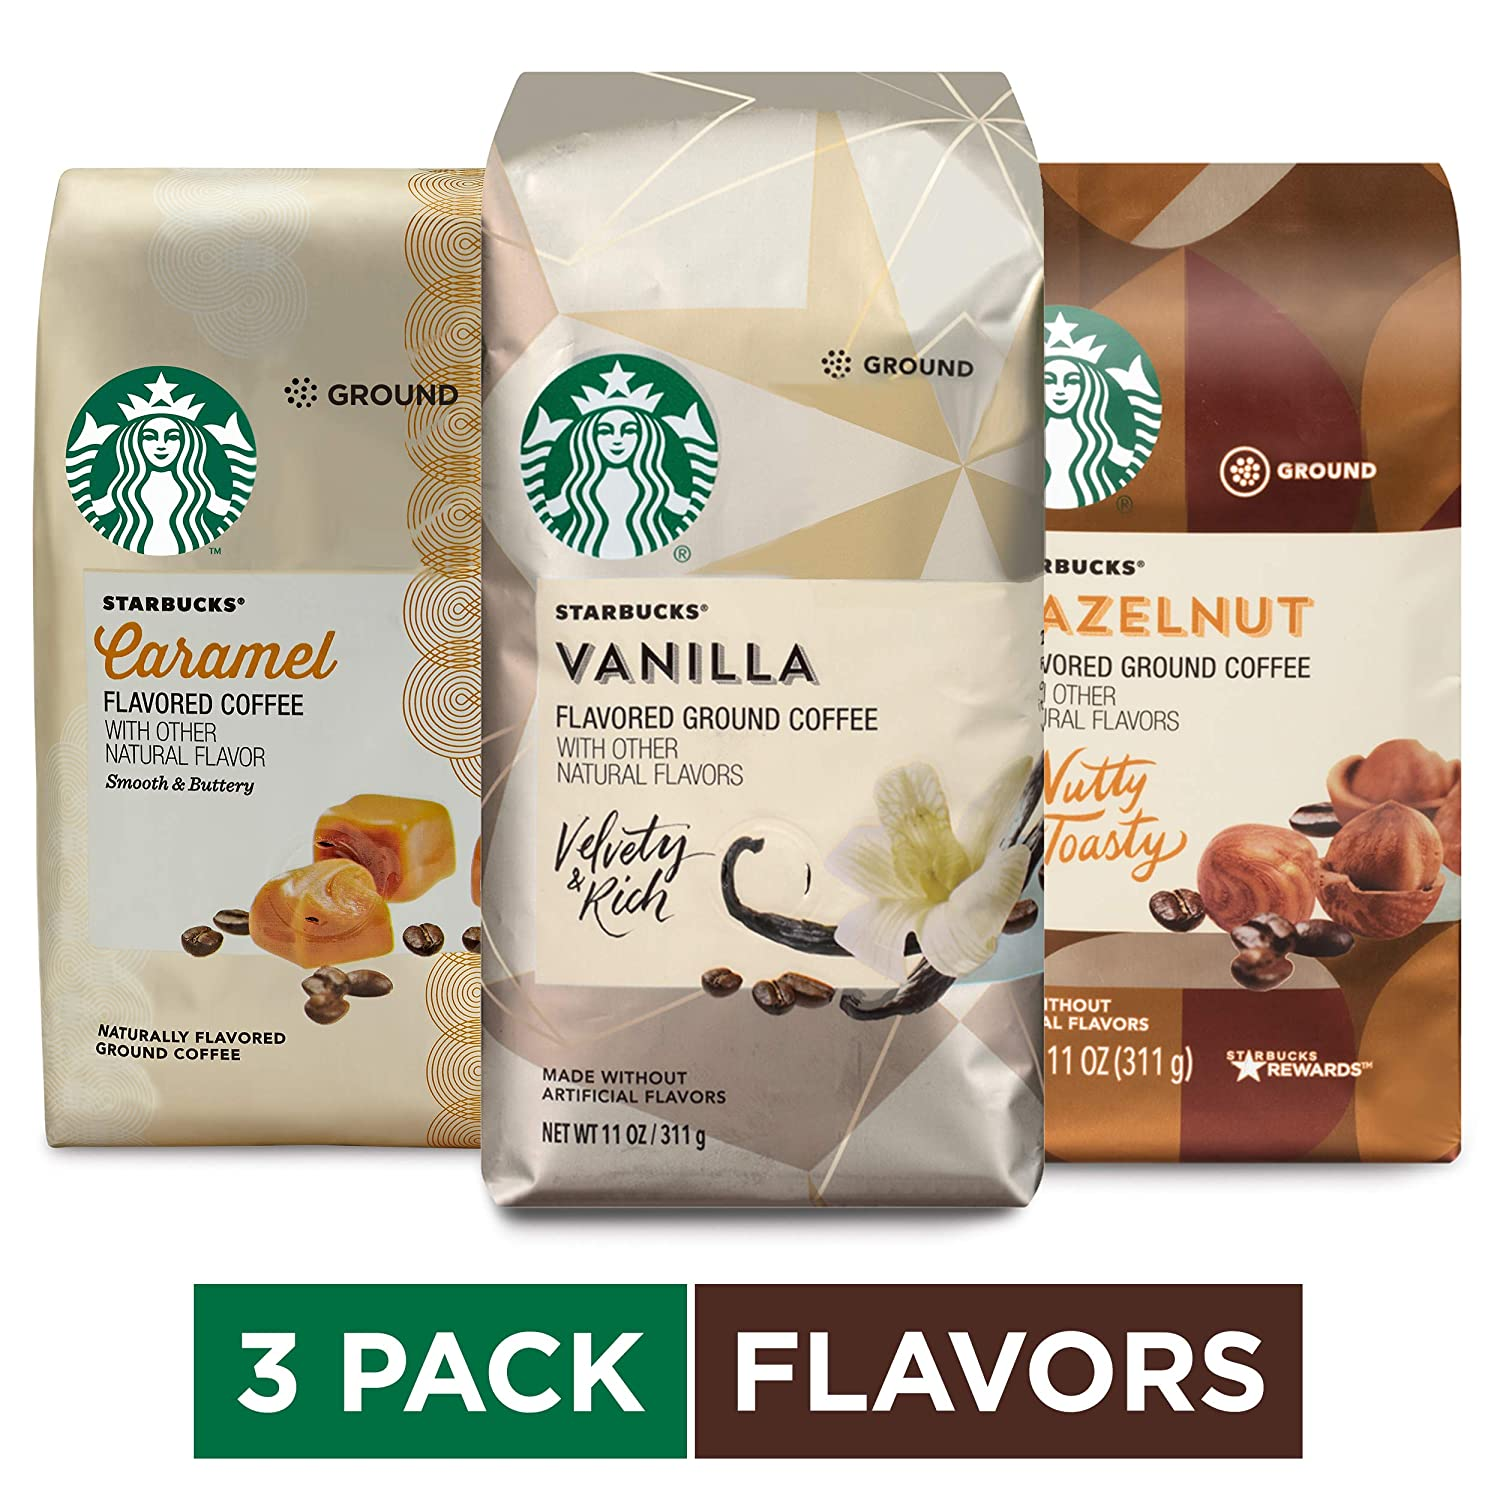 Starbucks Flavored Ground Coffee Variety Pack, 11 Ounce (Pack of 3)